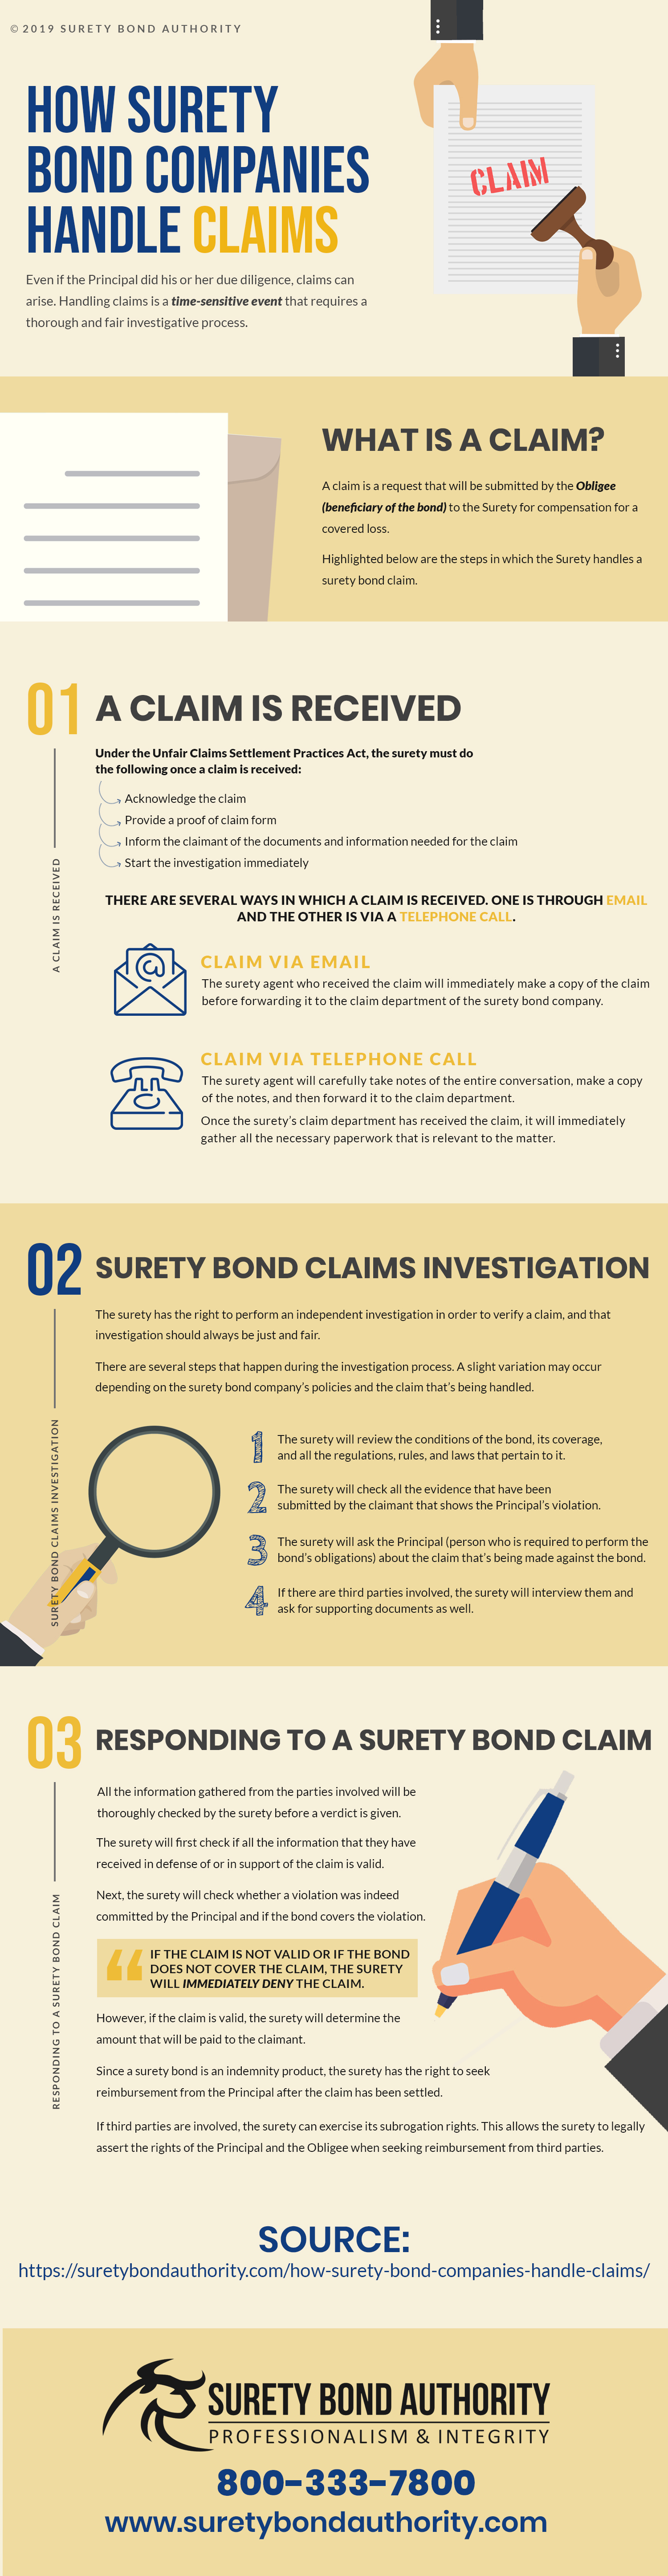 How Surety Bond Companies Handle Claims